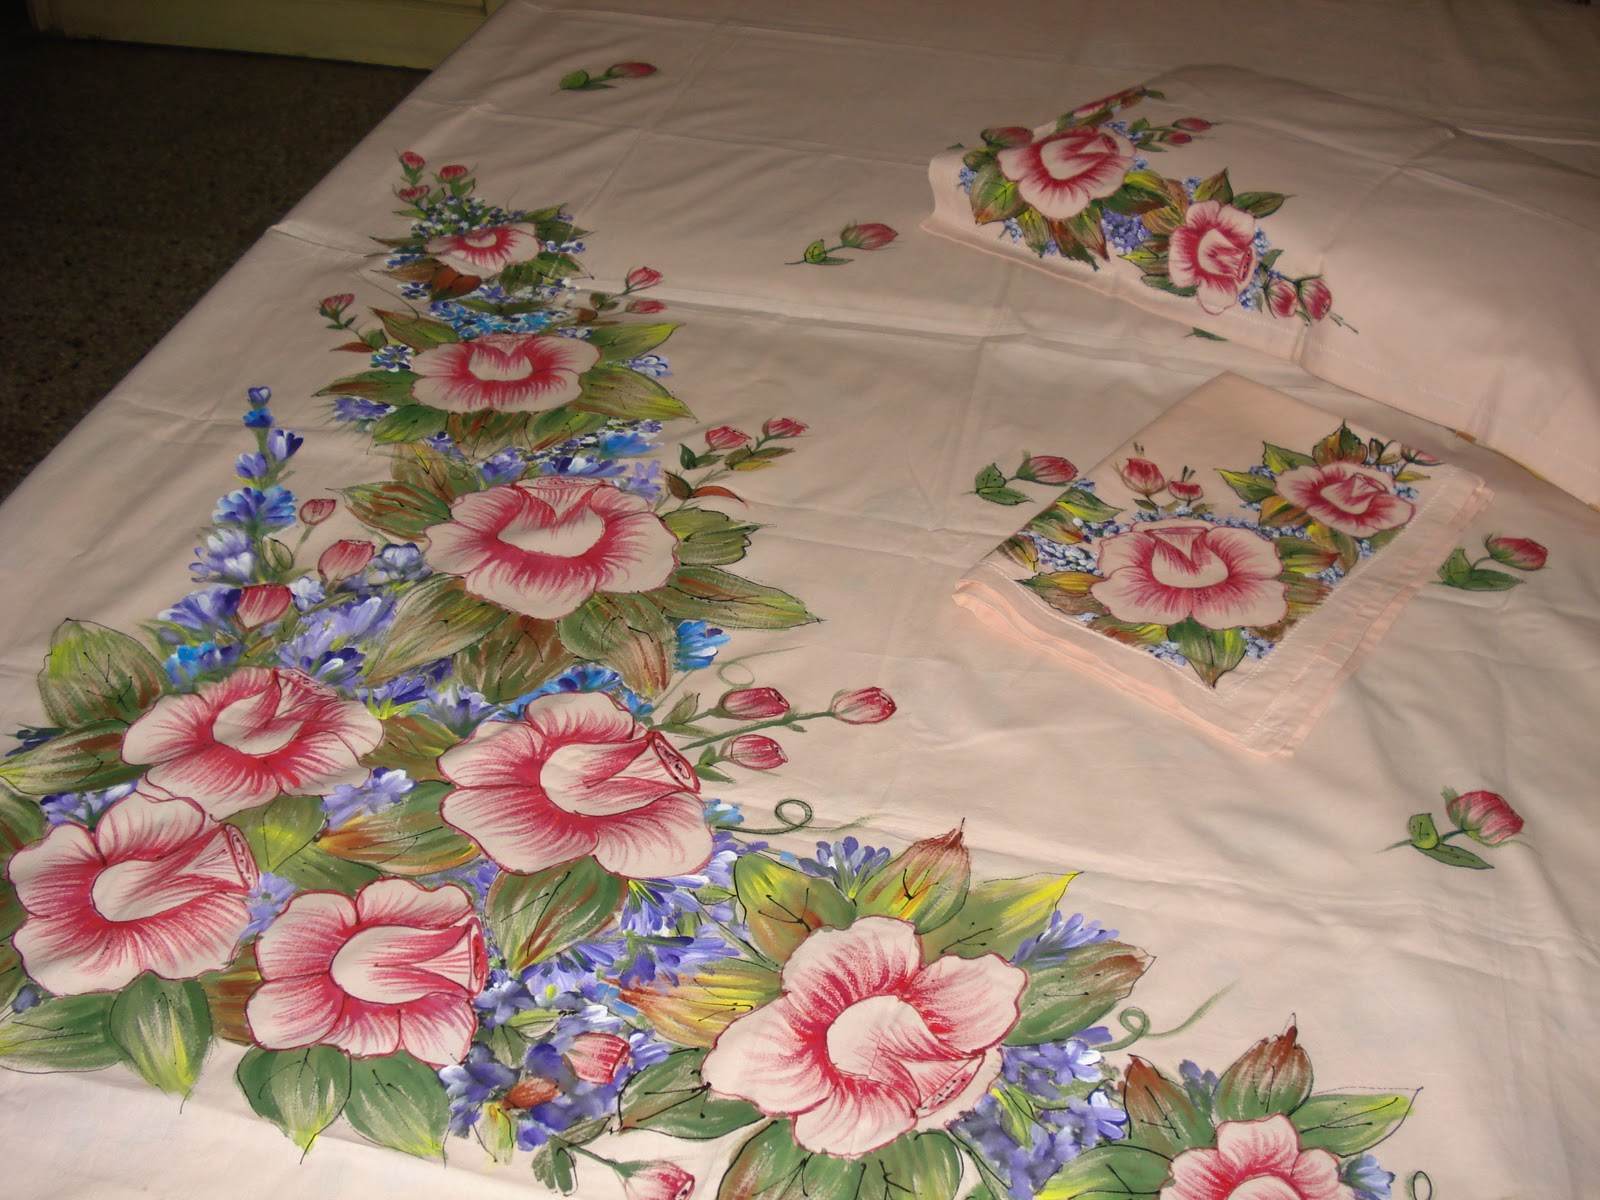 Rose Petals Free Hand Design On Bed Sheets 2